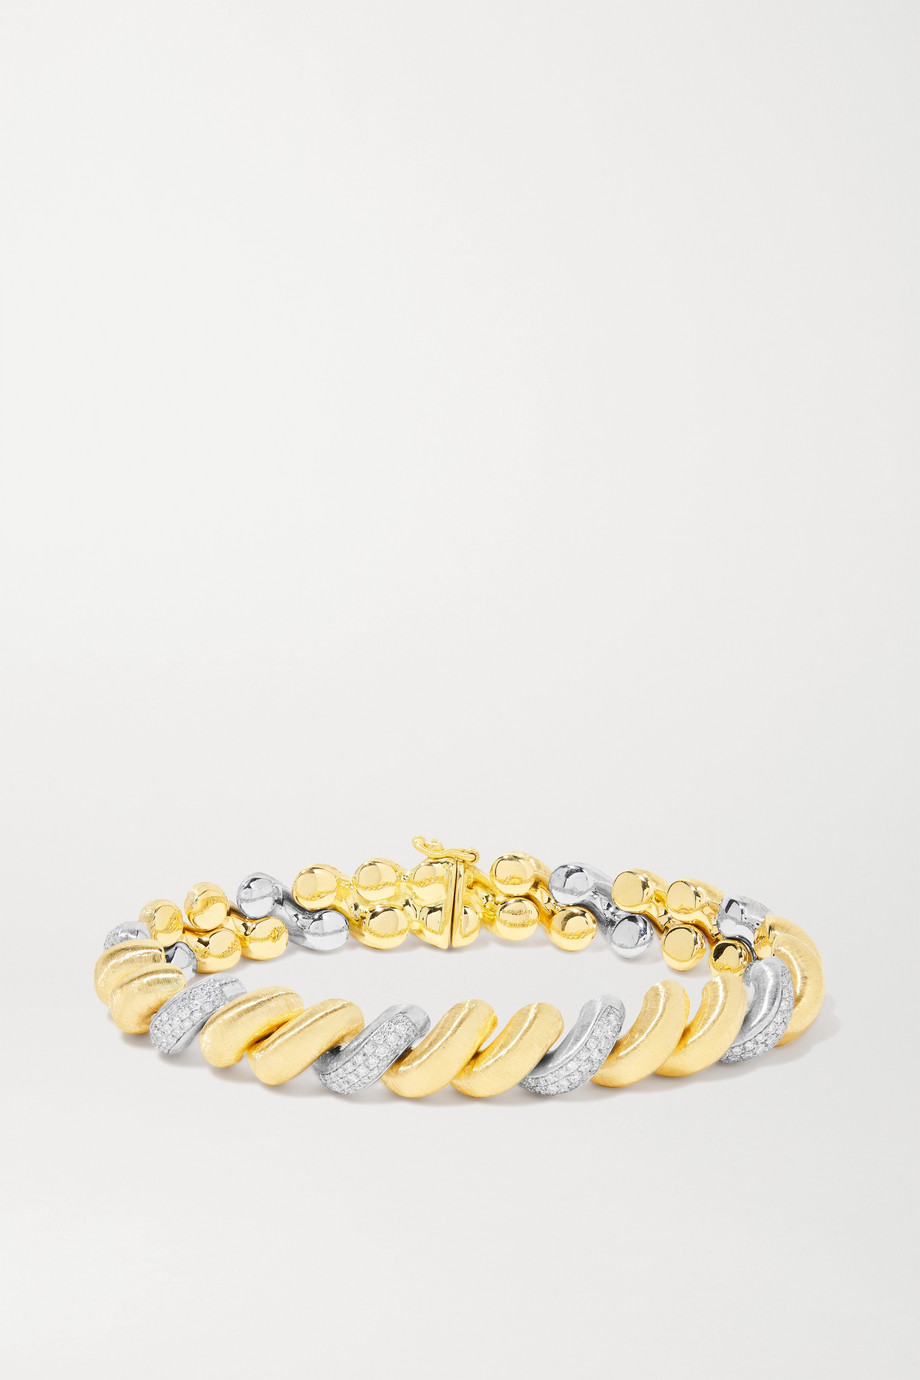 BUCCELLATI 18-karat yellow and white gold diamond bracelet